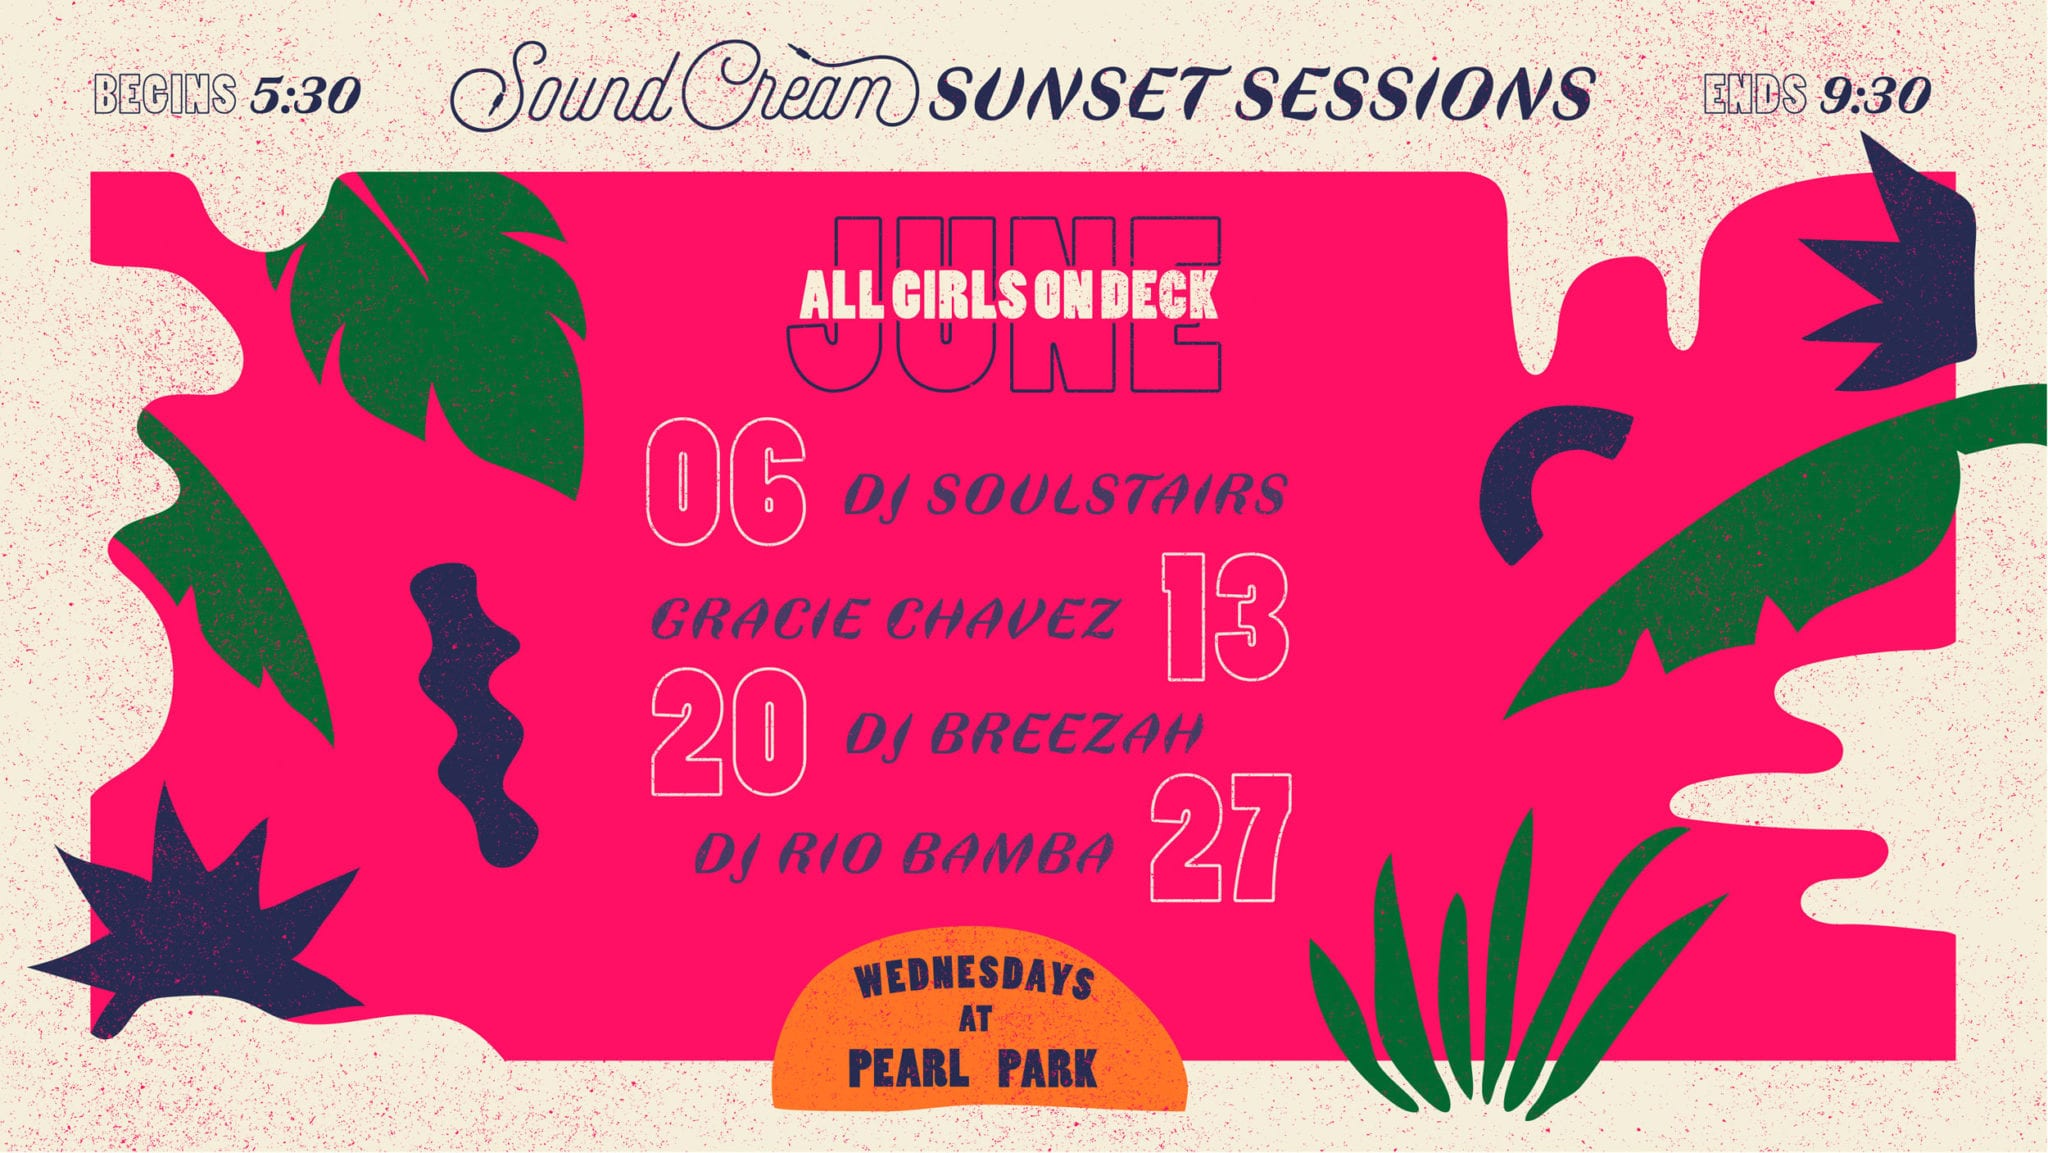 Soundcream_Airstream_June_Sunset_Sessions